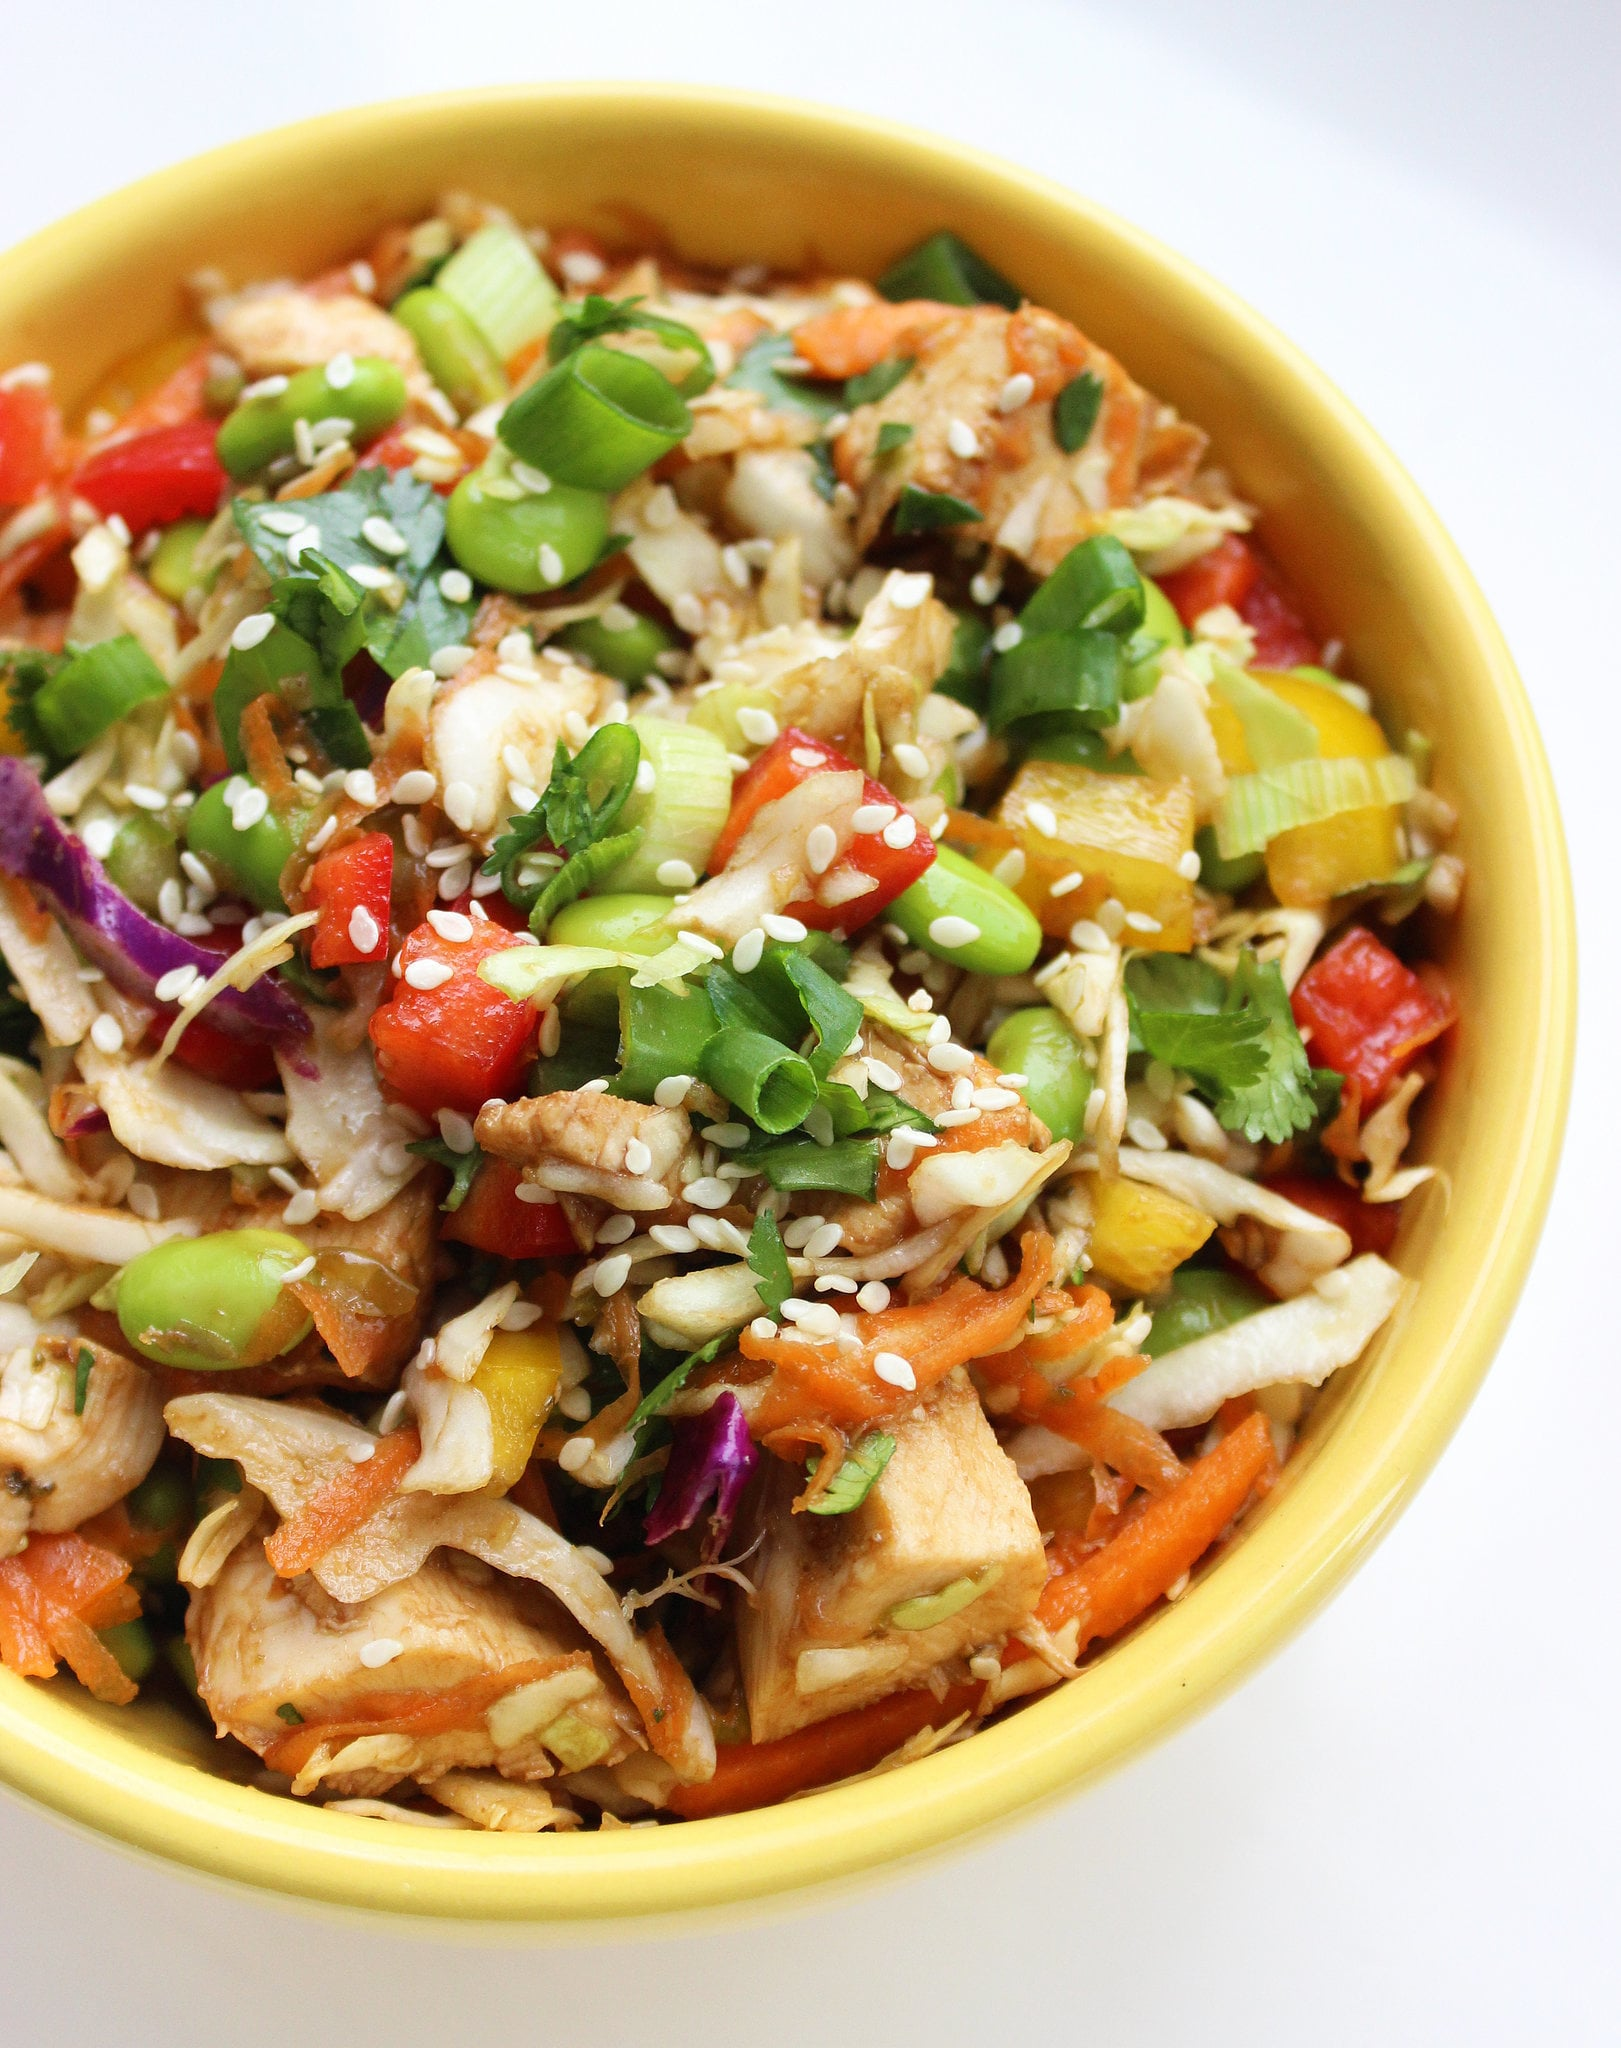 Chinese Chicken Salad Make Weight Loss Part Of Your Diet With These 110 Healthy Recipes Popsugar Fitness Photo 64